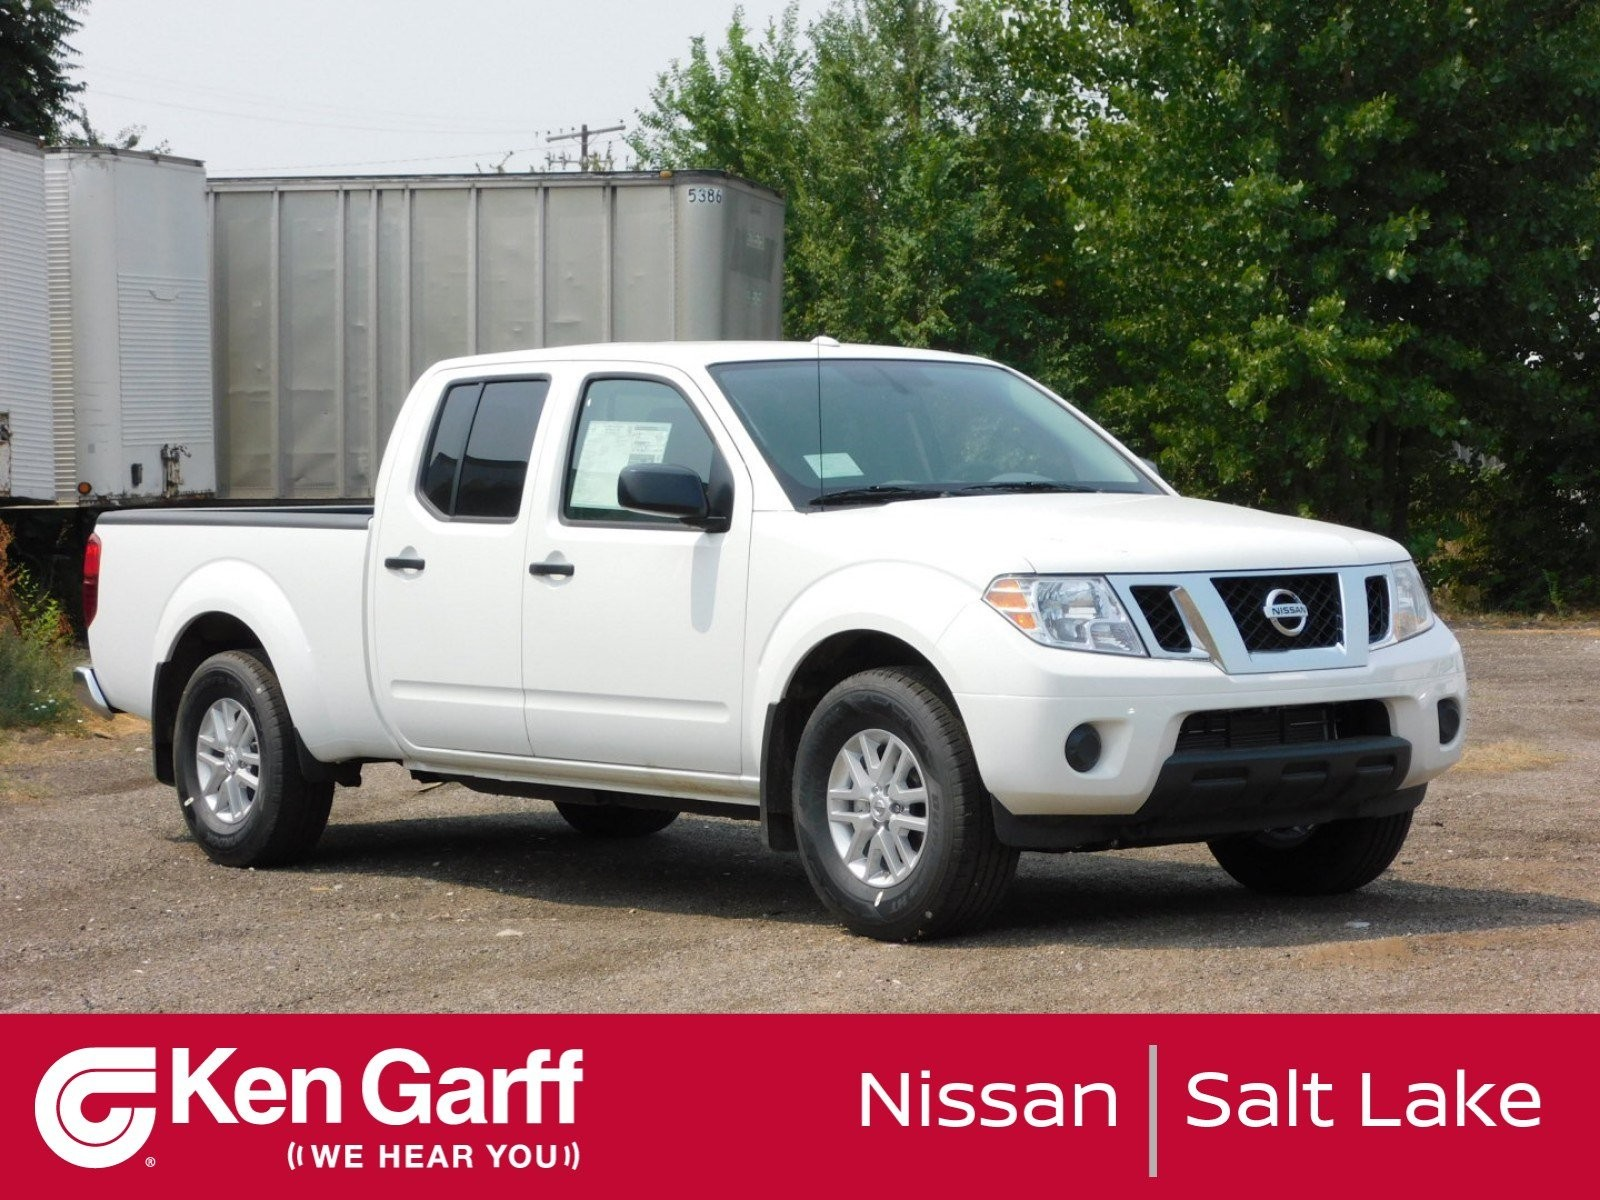 Nissan Truck Parts Diagram New 2018 Nissan Frontier Sv V6 Crew Cab Pickup In Salt Lake City Of Nissan Truck Parts Diagram New 2018 Nissan Frontier Sv V6 Crew Cab Pickup In Salt Lake City